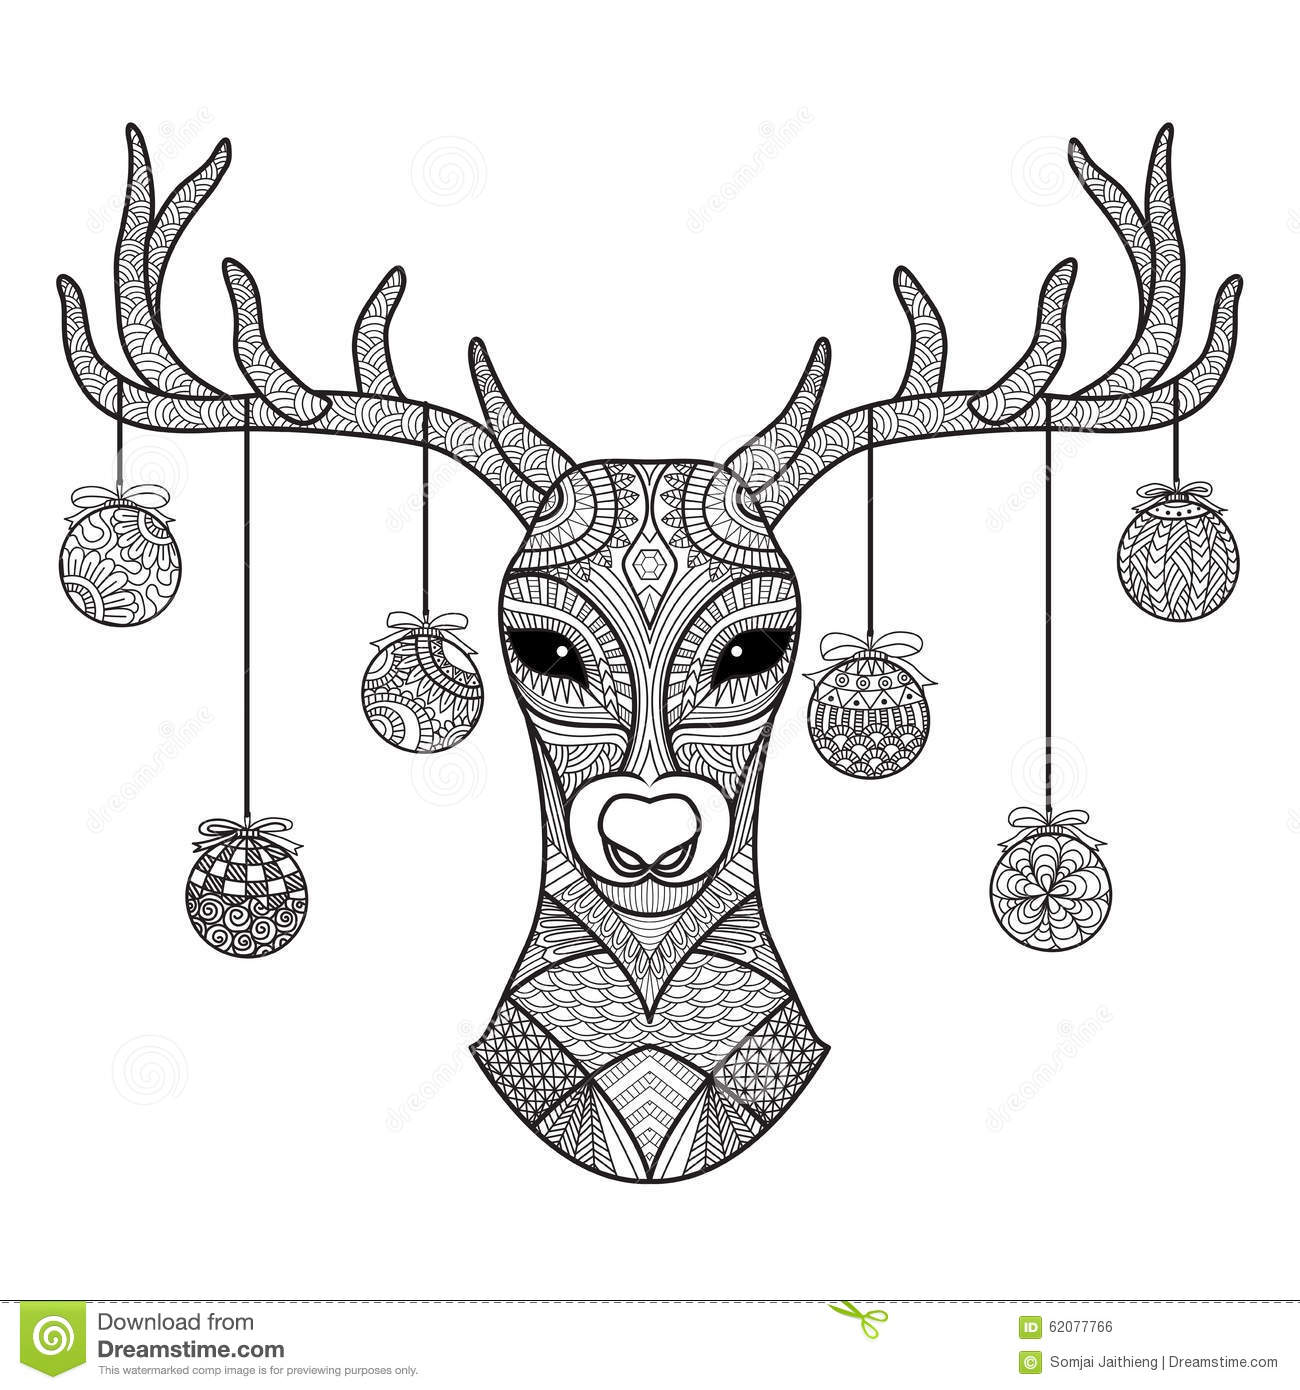 Christmas Card Coloring Sheets With Hand Drawn Deer Head Balls Hanging On Its Horn For